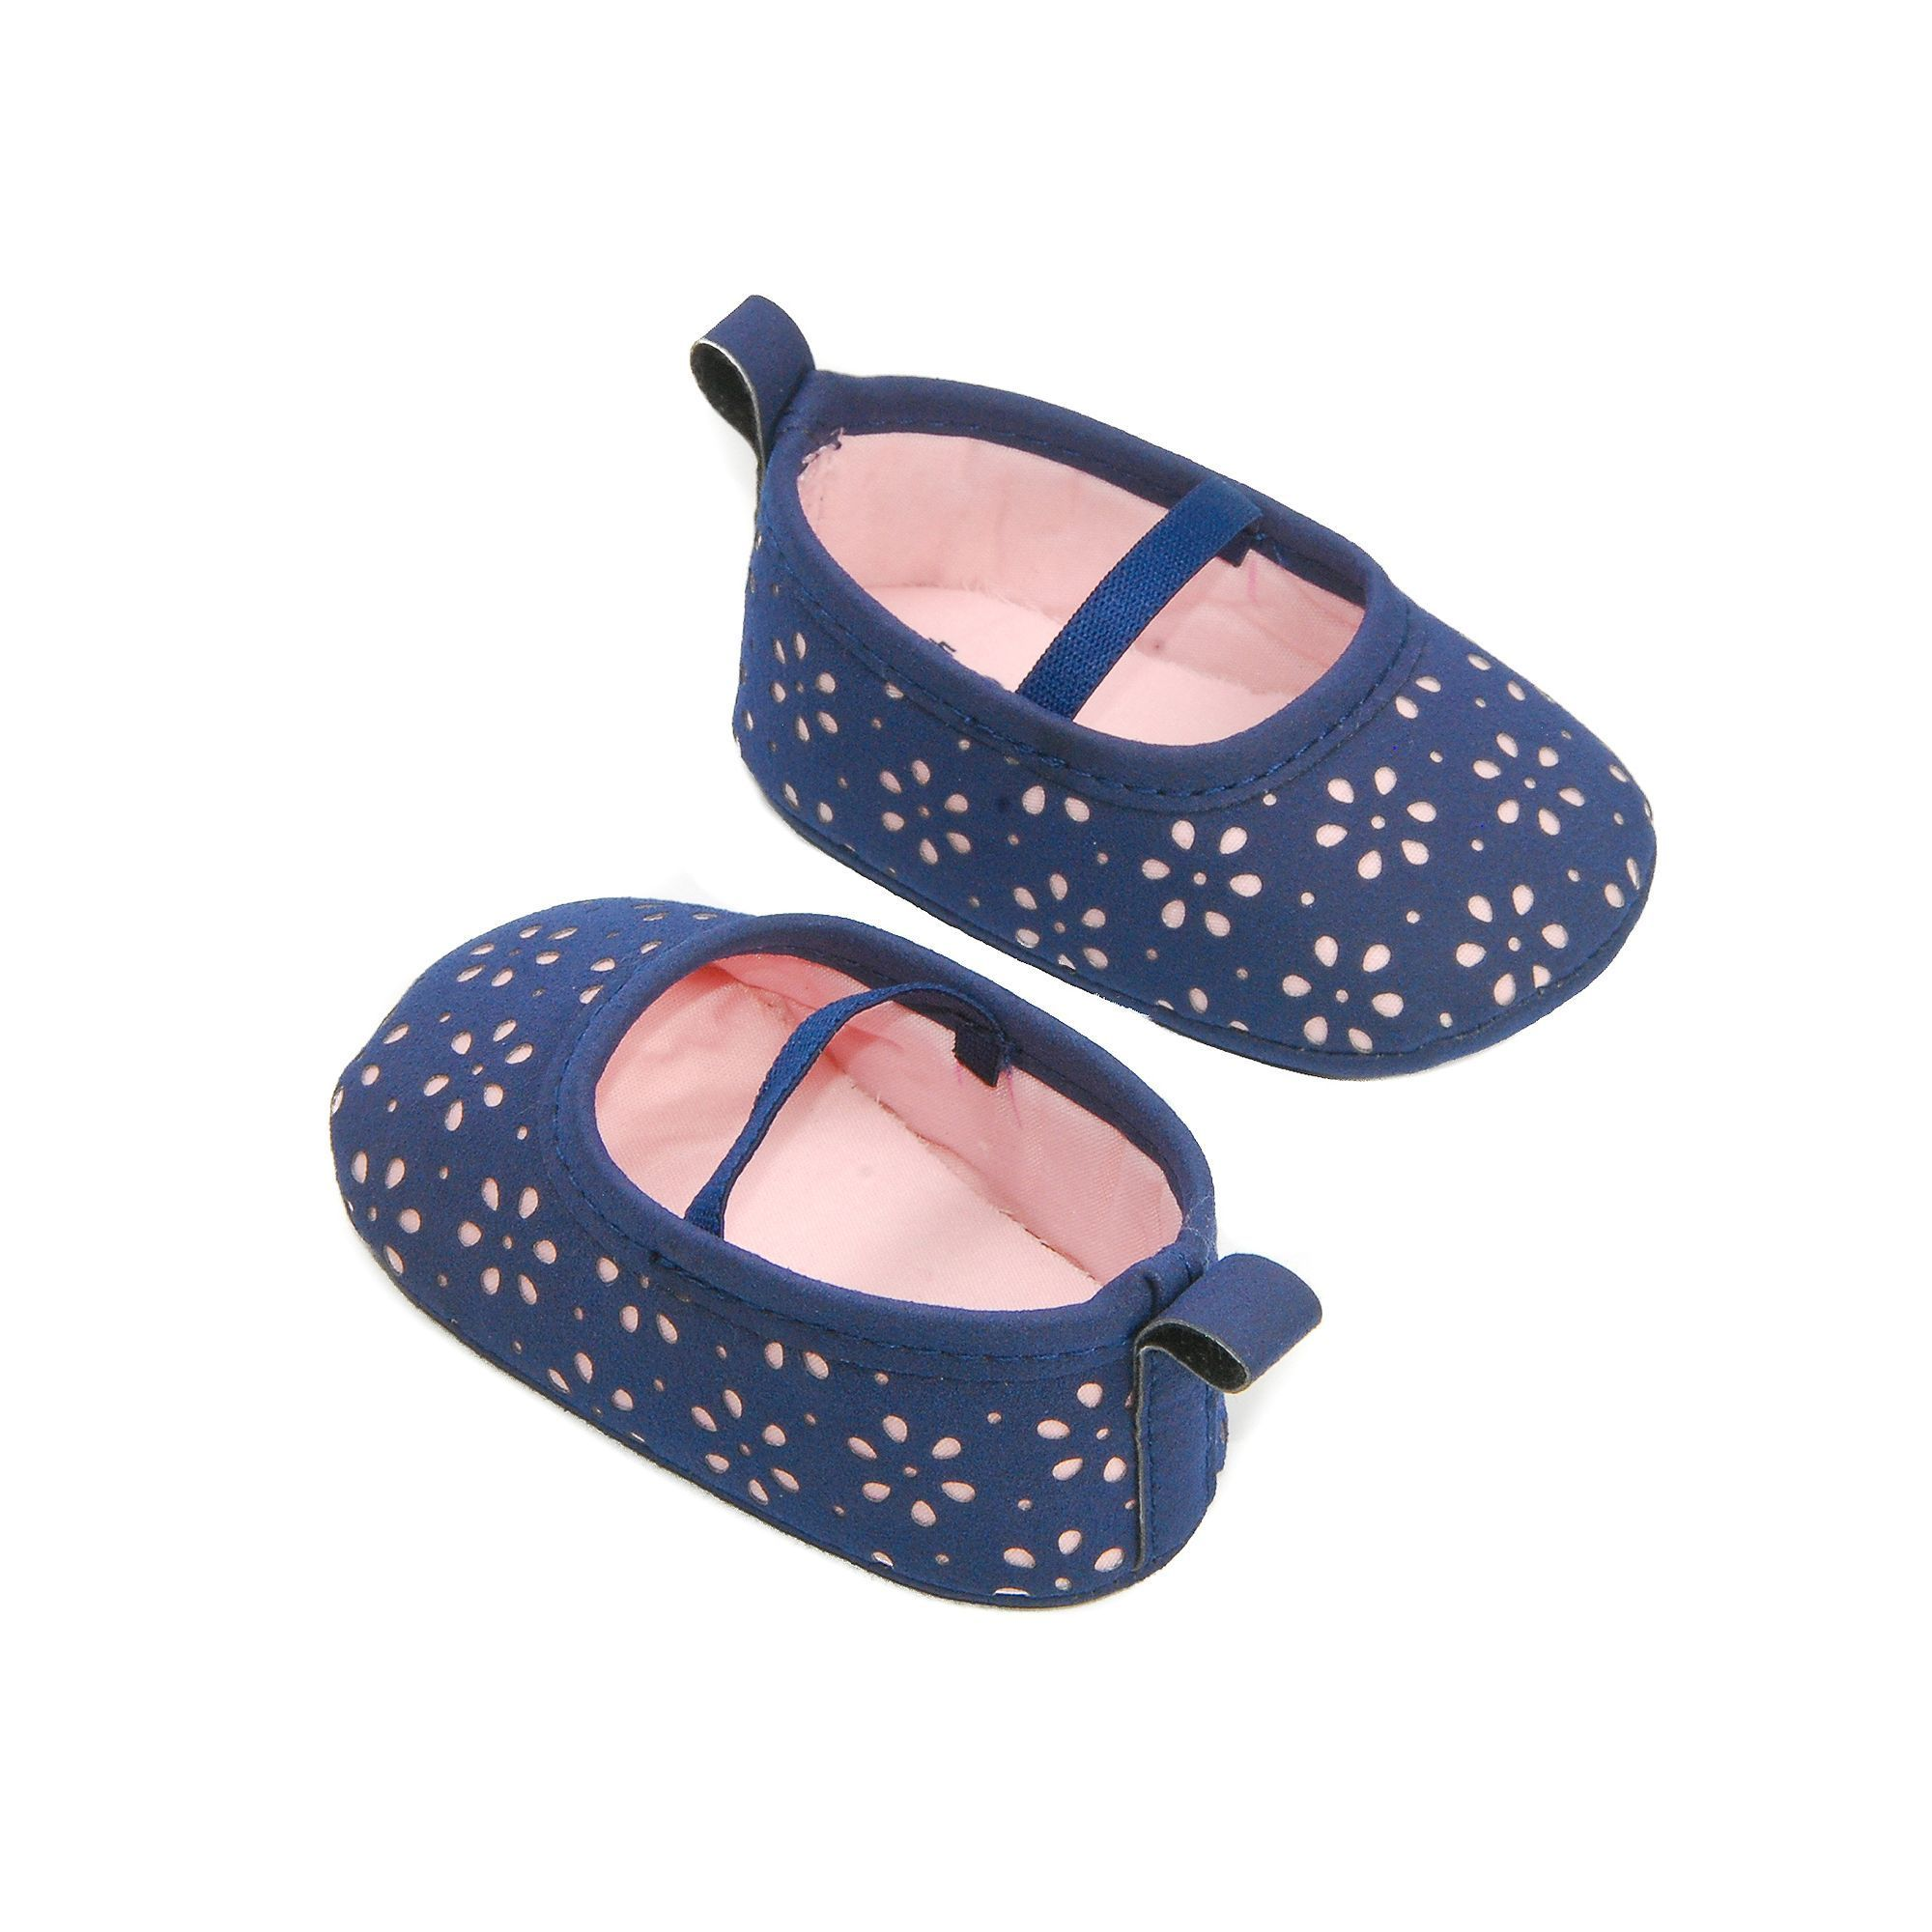 il strap soft toms spring soles au cribs crib tstrap zoom fullxfull moccasins listing t baby shoes leather